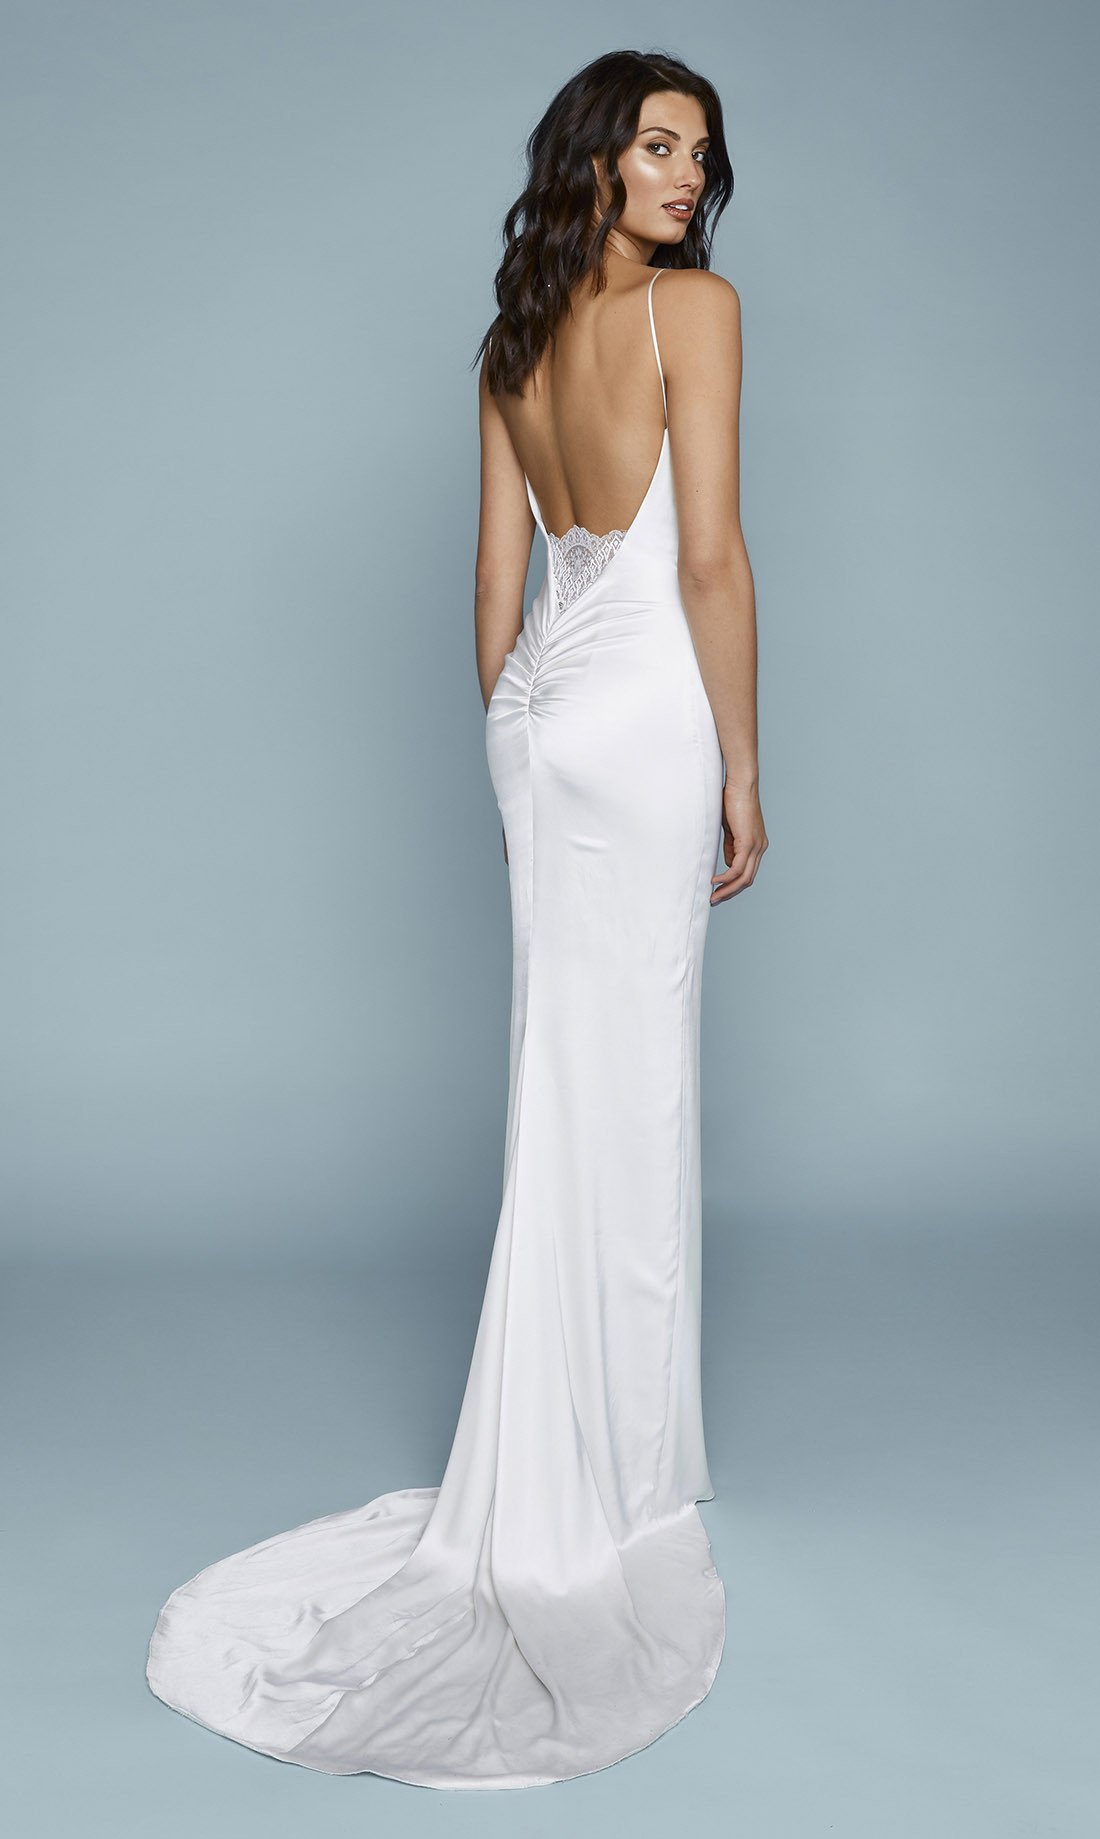 21 Astonishing Ideas of Backless Wedding Dresses | The Best Wedding ...